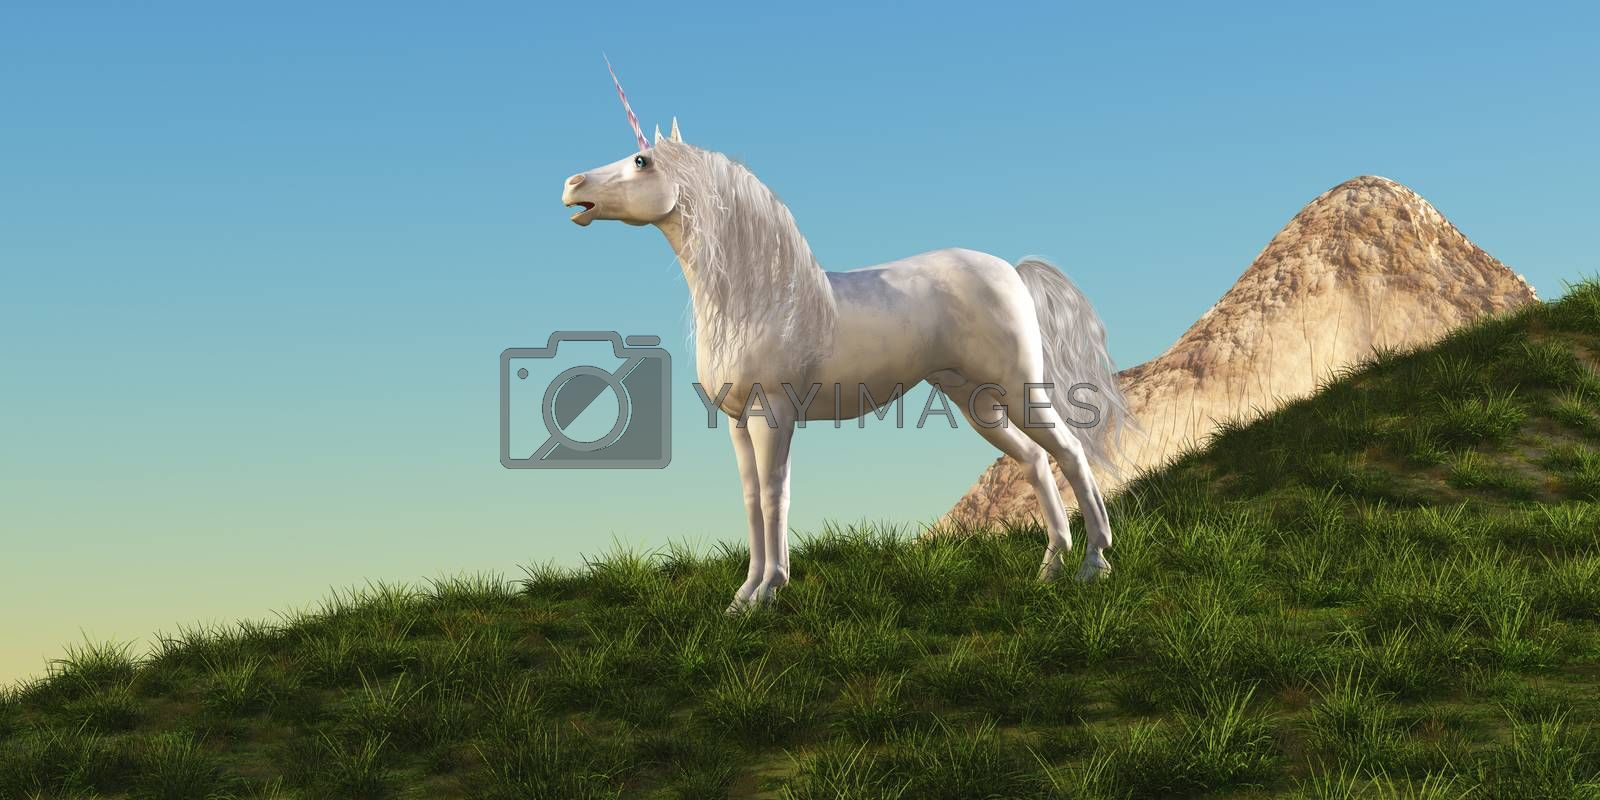 A magical white Unicorn stallion stands majestically on a hilltop gathering his herd to follow him.